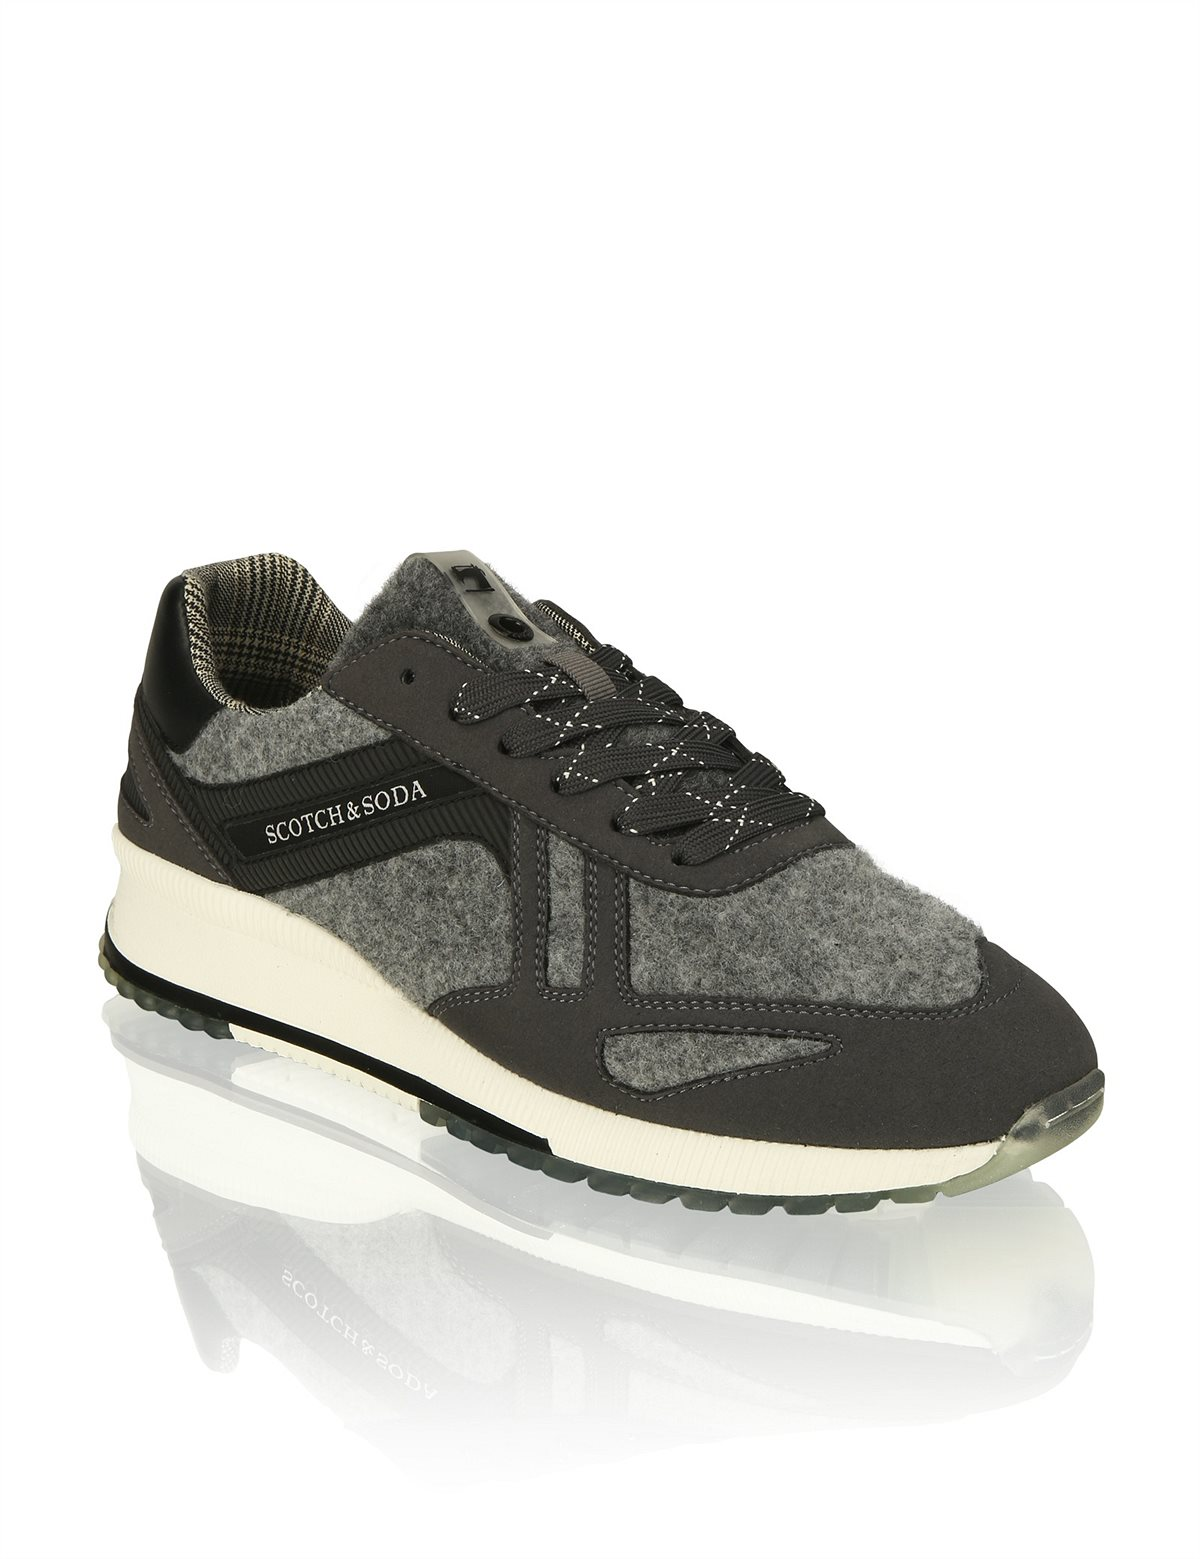 HUMANIC 27 Scotch_Soda Textil-Sneaker EUR 110 2221142944